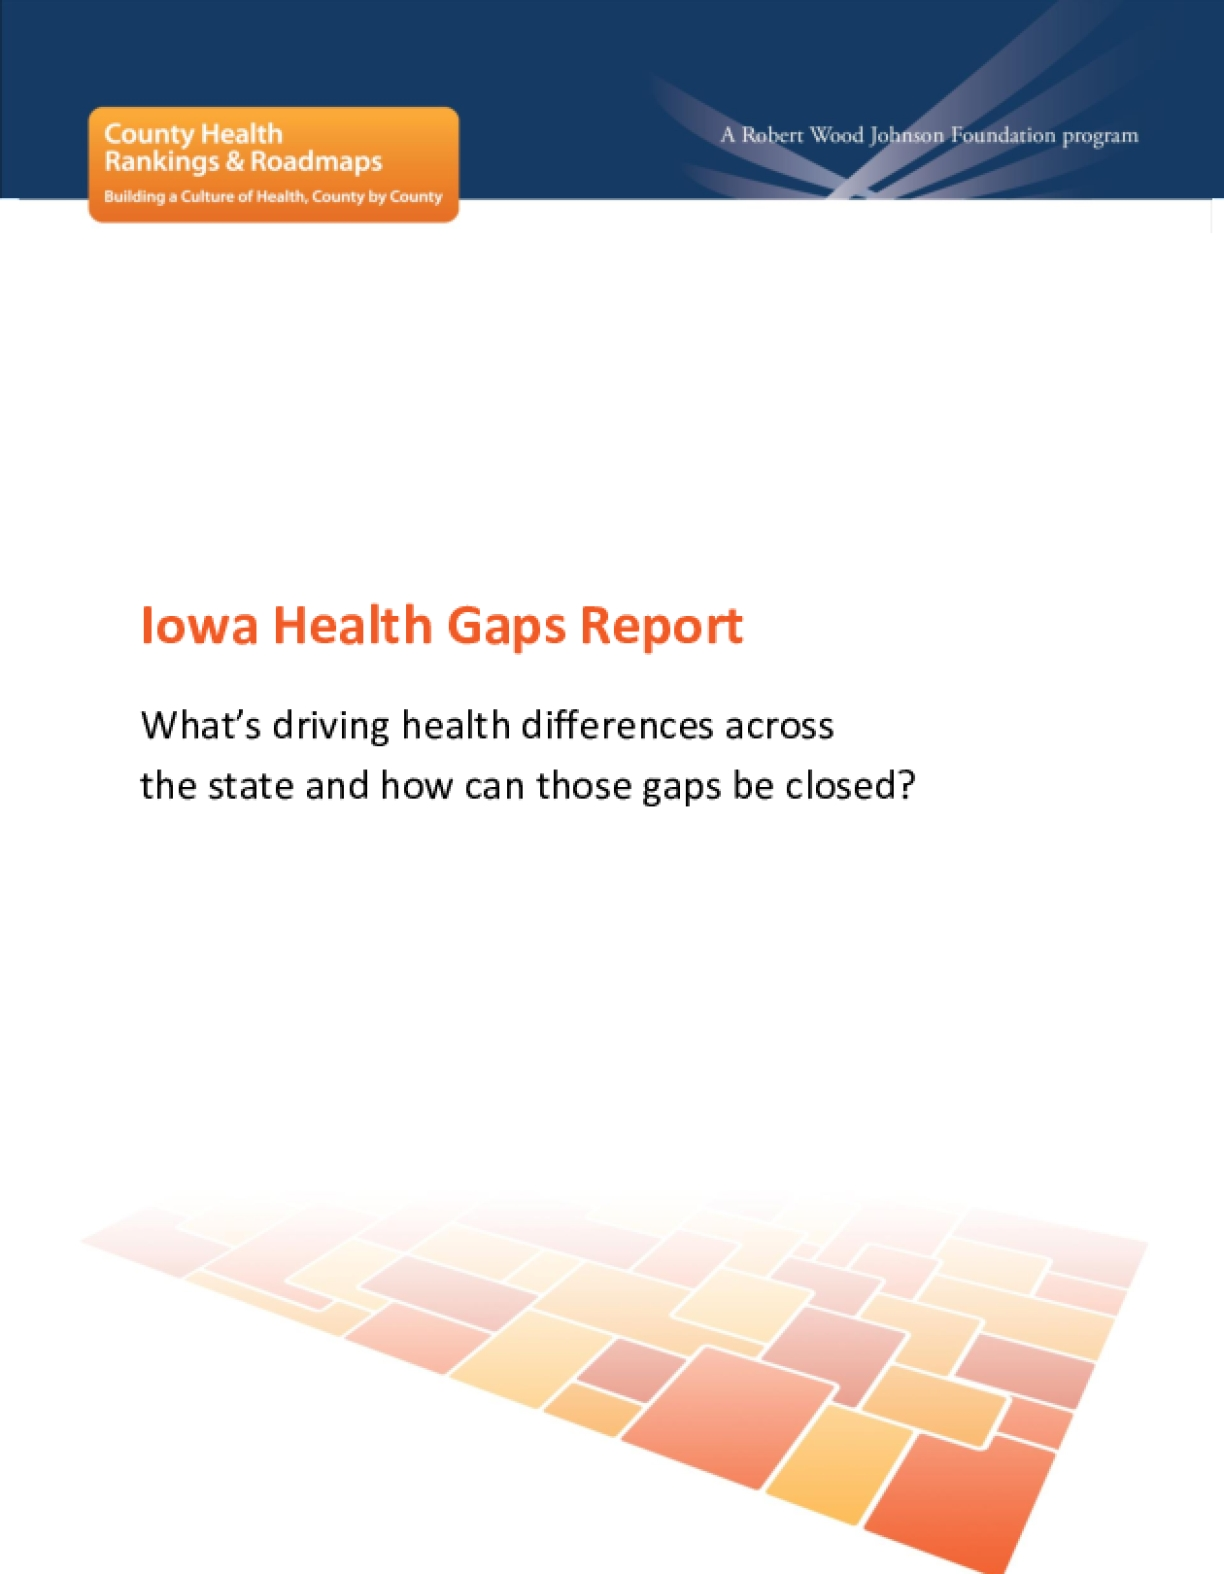 Iowa Health Gaps Report: What's Driving Health Differences Across the State and How Can Those Gaps Be Closed?